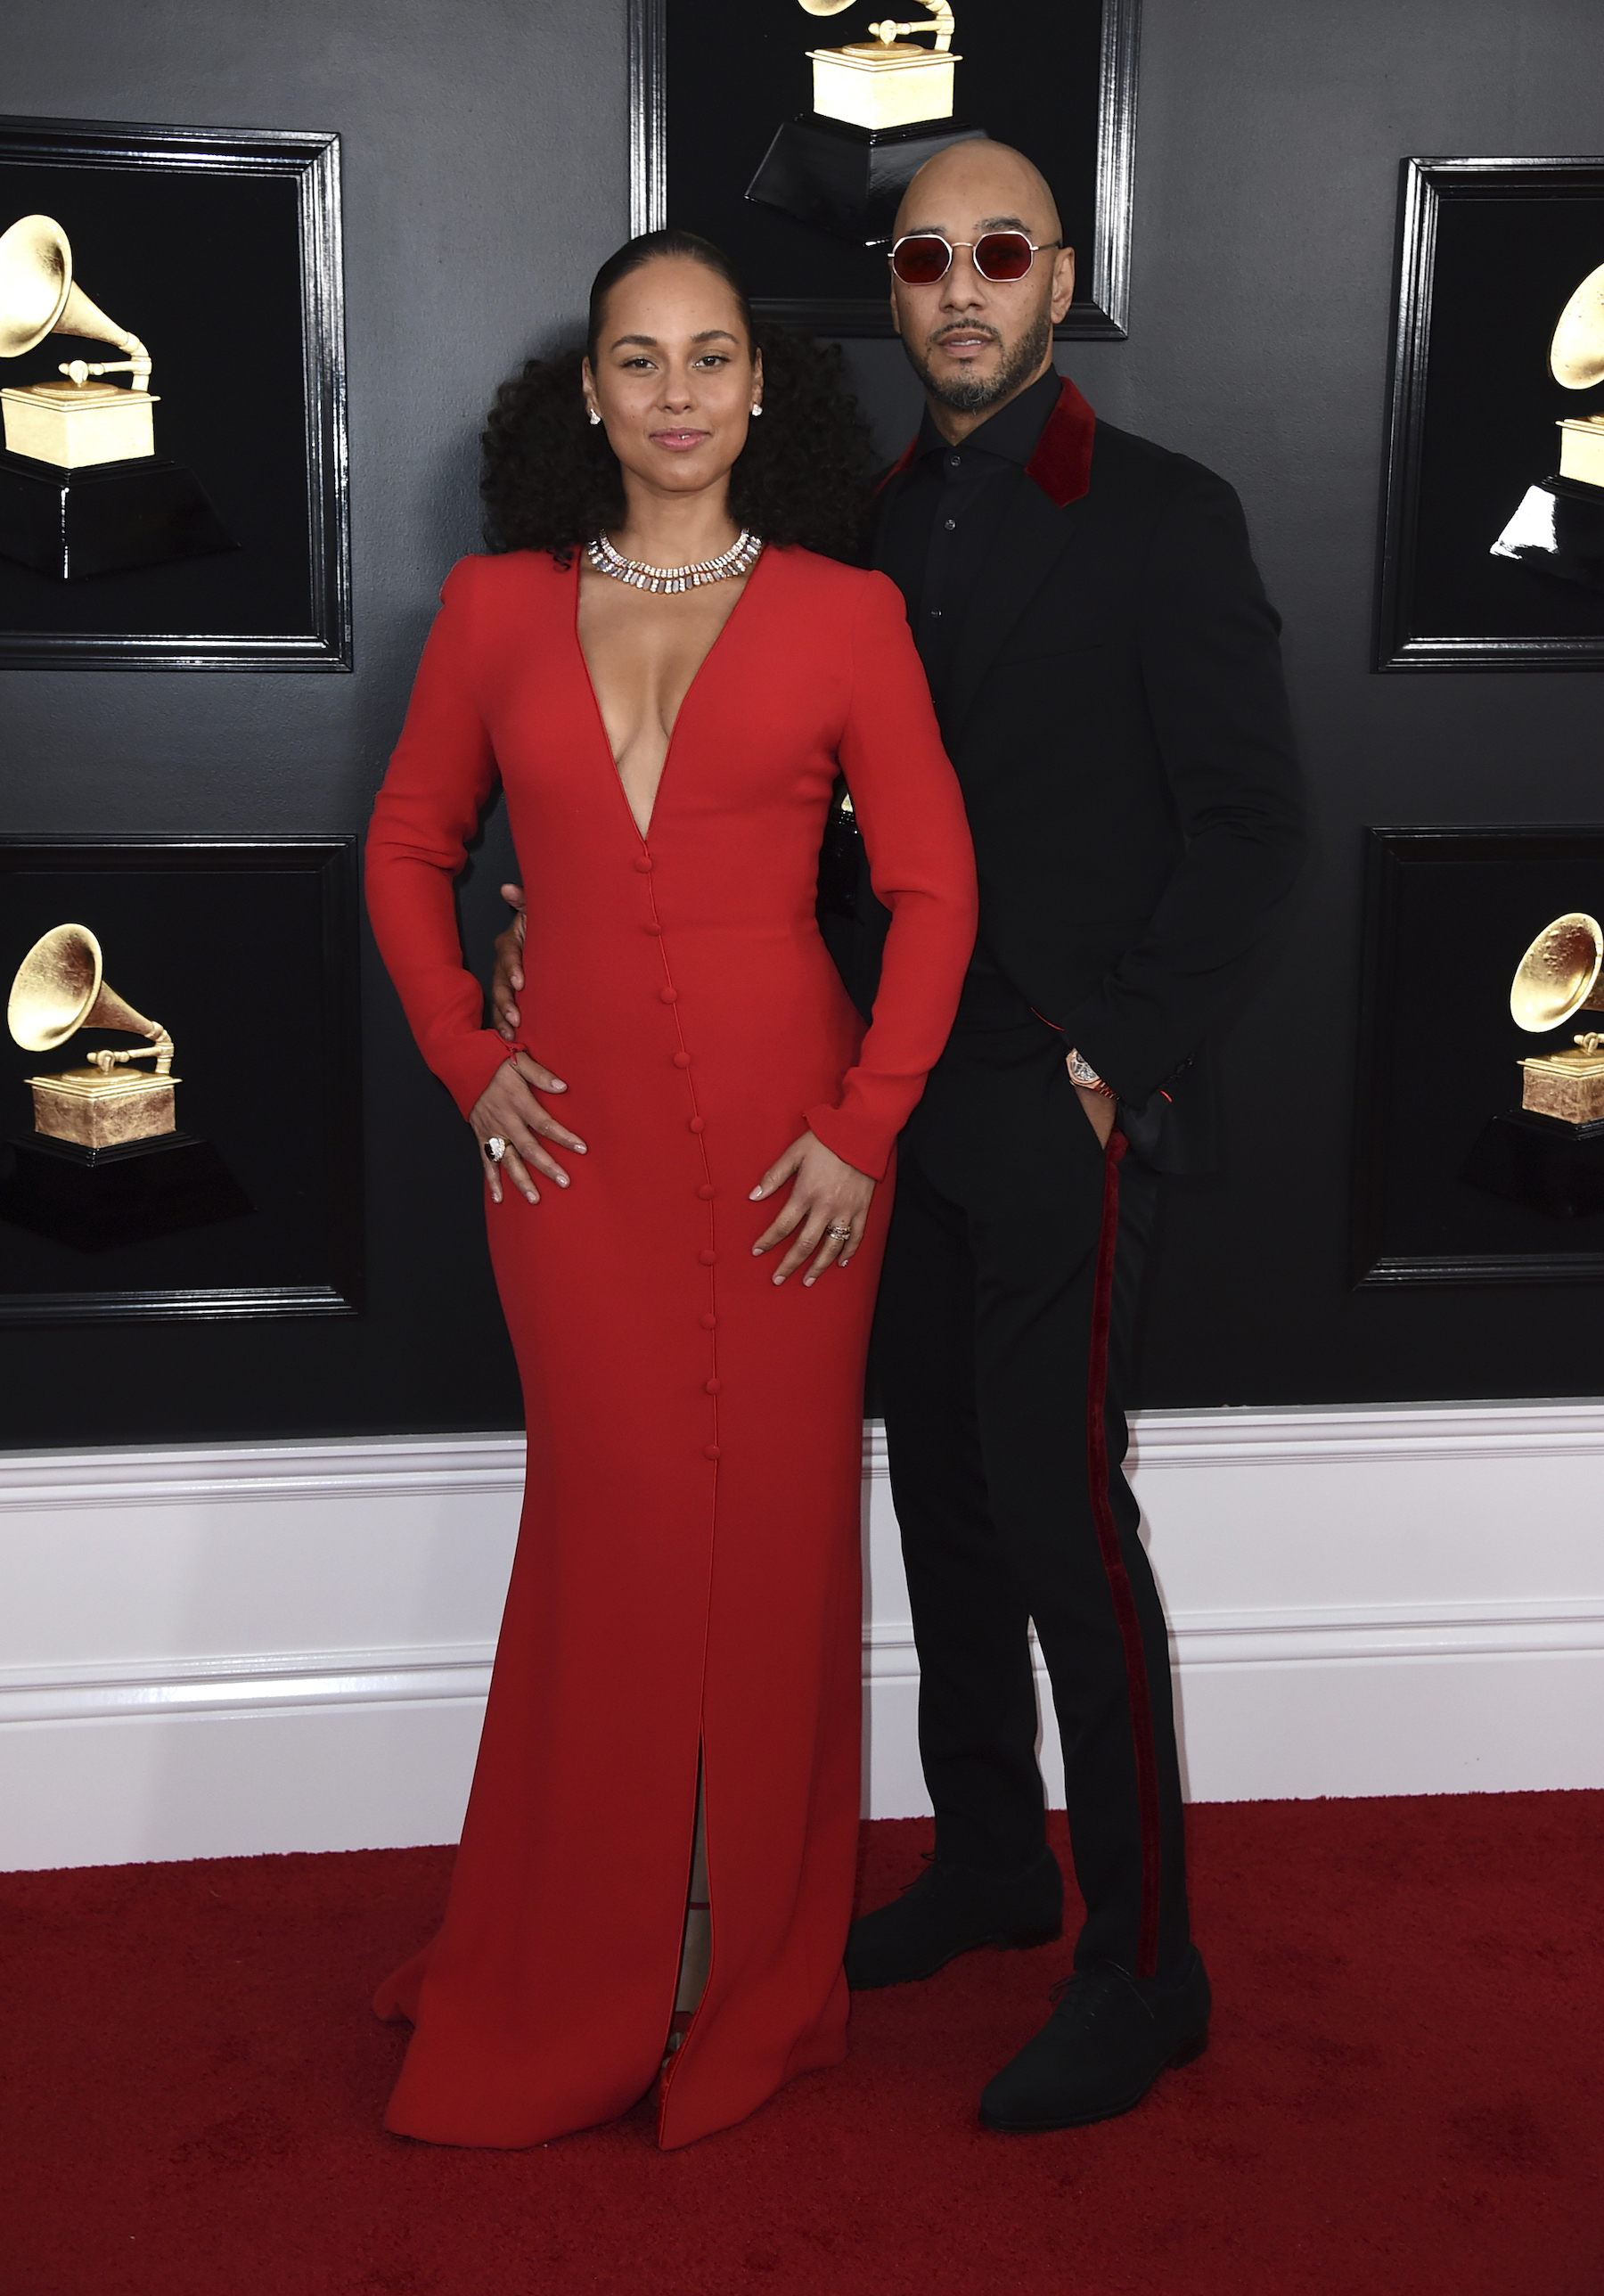 "<div class=""meta image-caption""><div class=""origin-logo origin-image ap""><span>AP</span></div><span class=""caption-text"">Alicia Keys, left, and Swizz Beatz arrive at the 61st annual Grammy Awards at the Staples Center on Sunday, Feb. 10, 2019, in Los Angeles. (Jordan Strauss/Invision/AP)</span></div>"